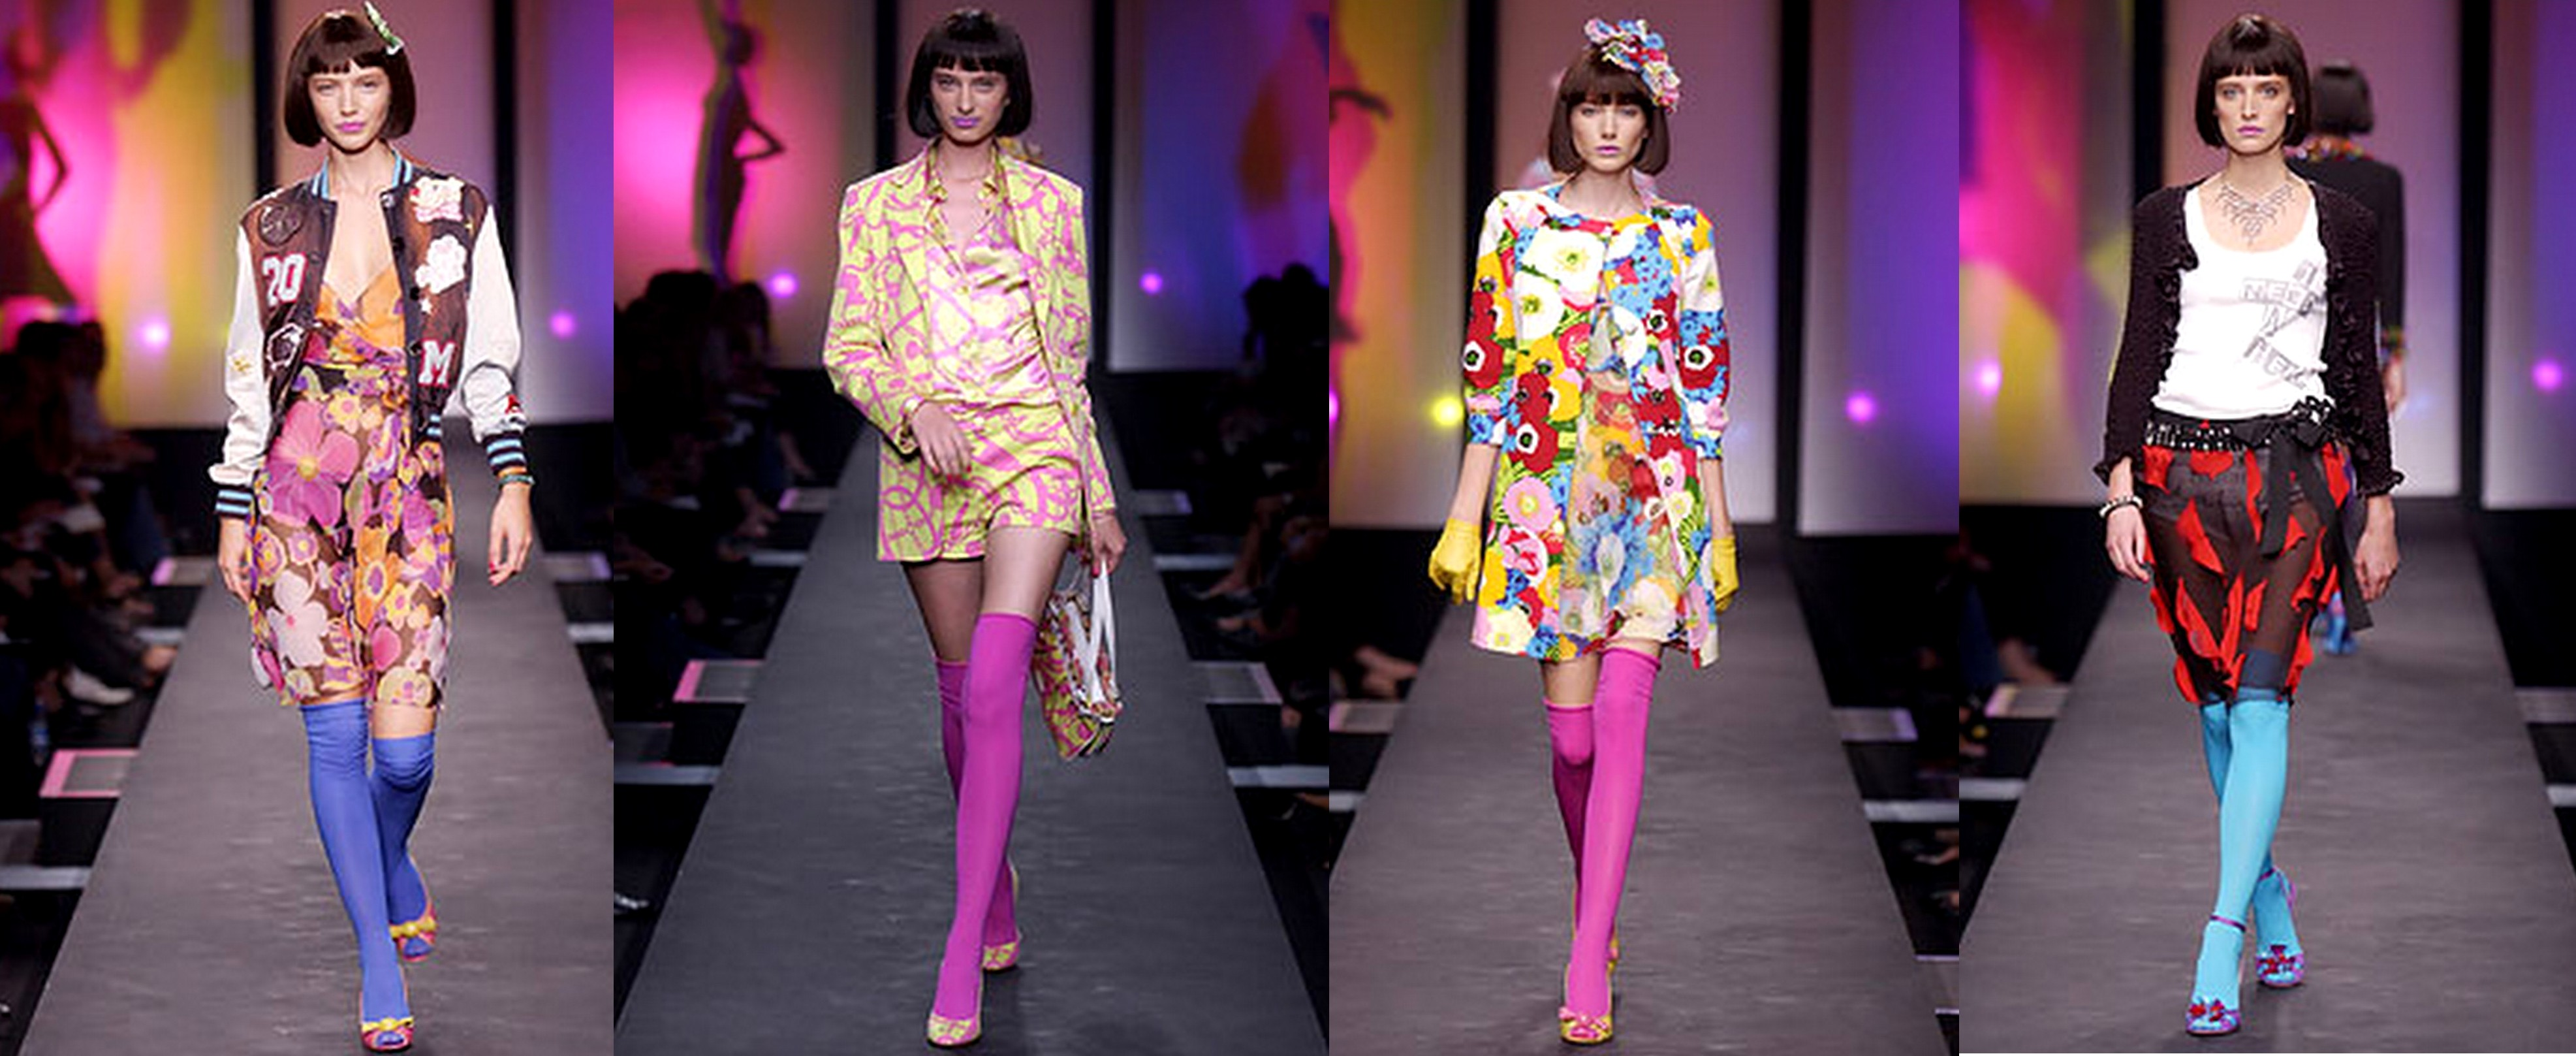 Moschino. Fashion Kaleidoscope